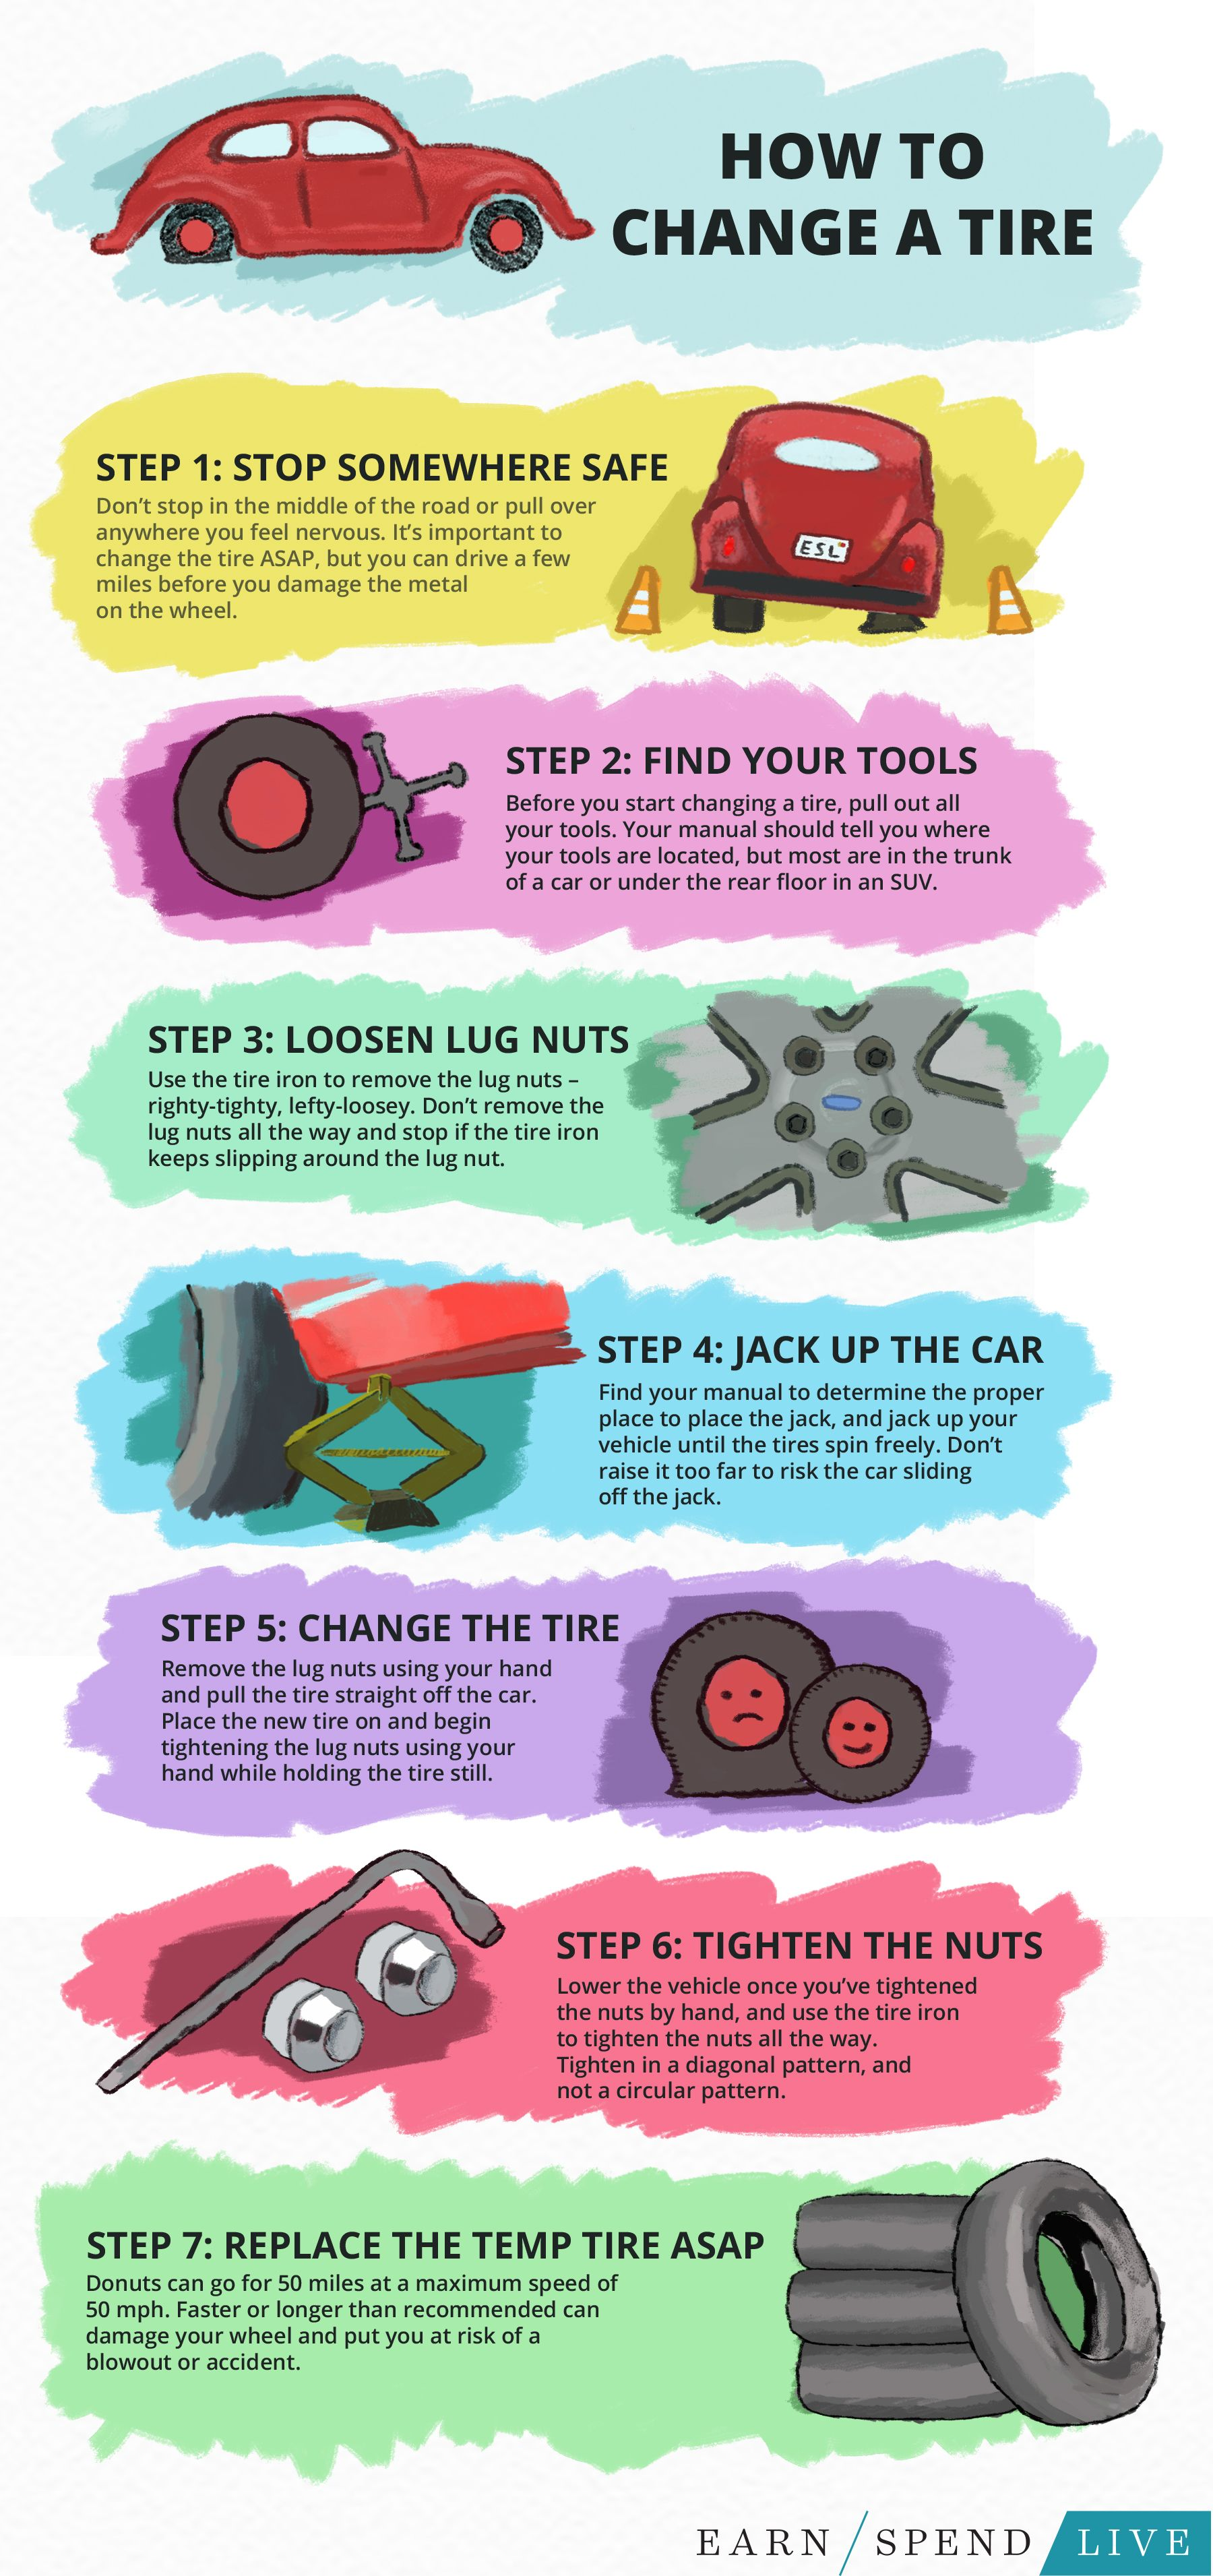 how to change a tire in 7 easy steps | auto tips | car care